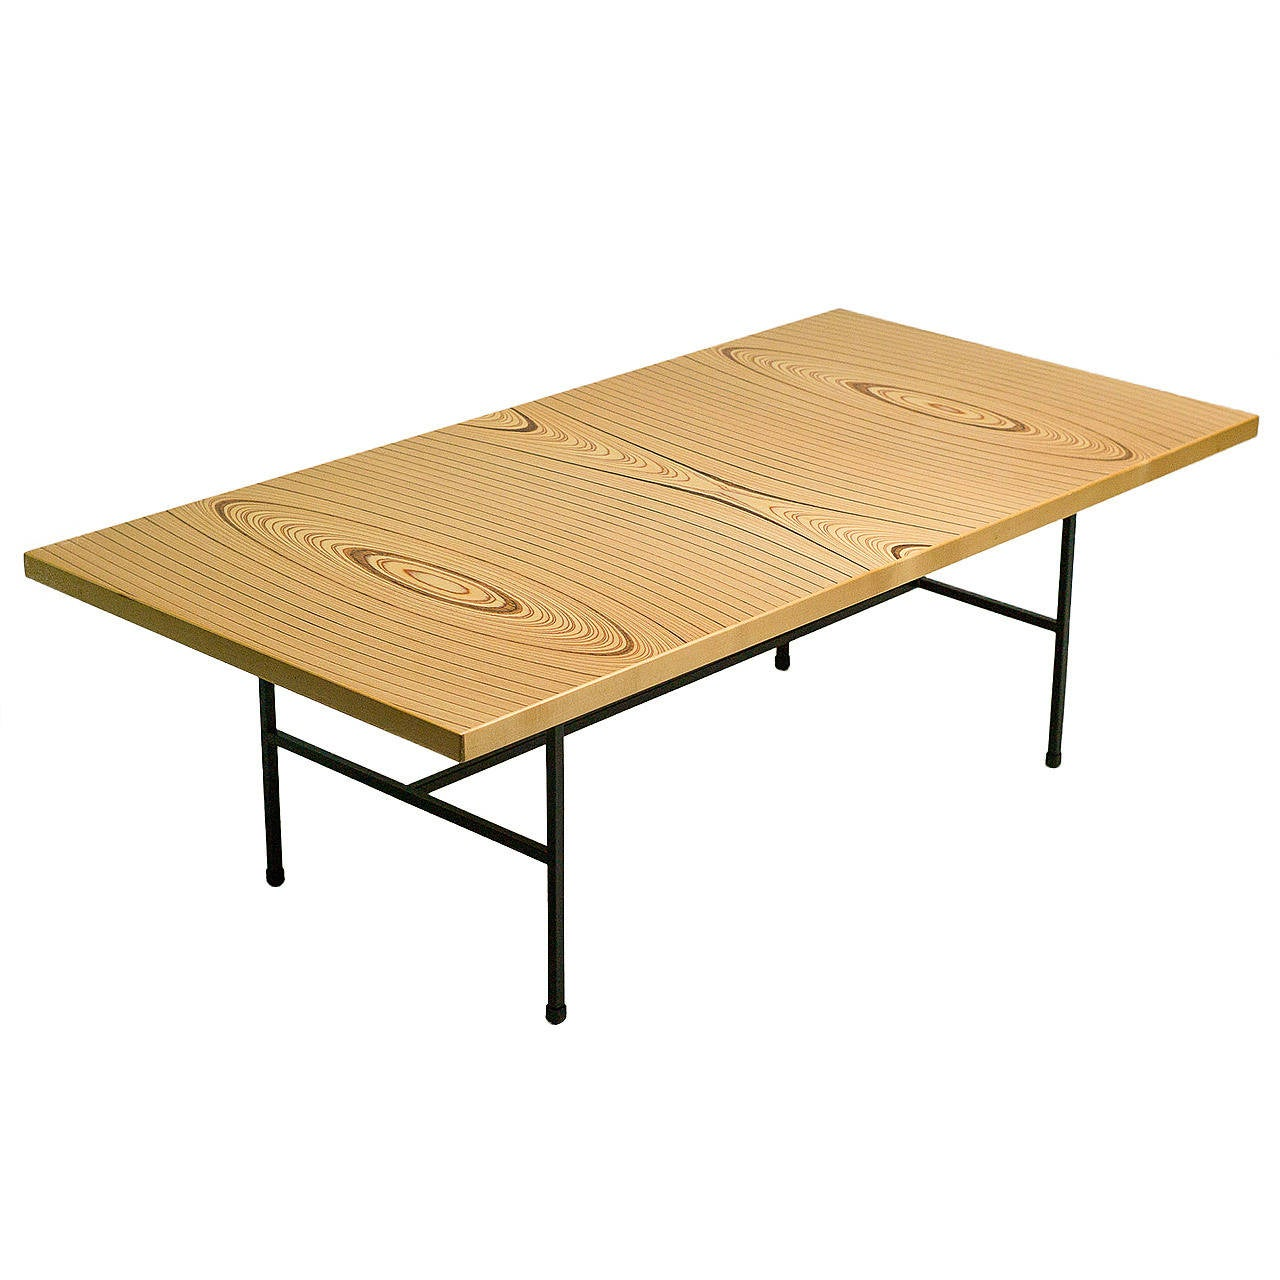 Laminated Plywood Low Table By Tapio Wirkkala For Asko For Sale At 1stdibs